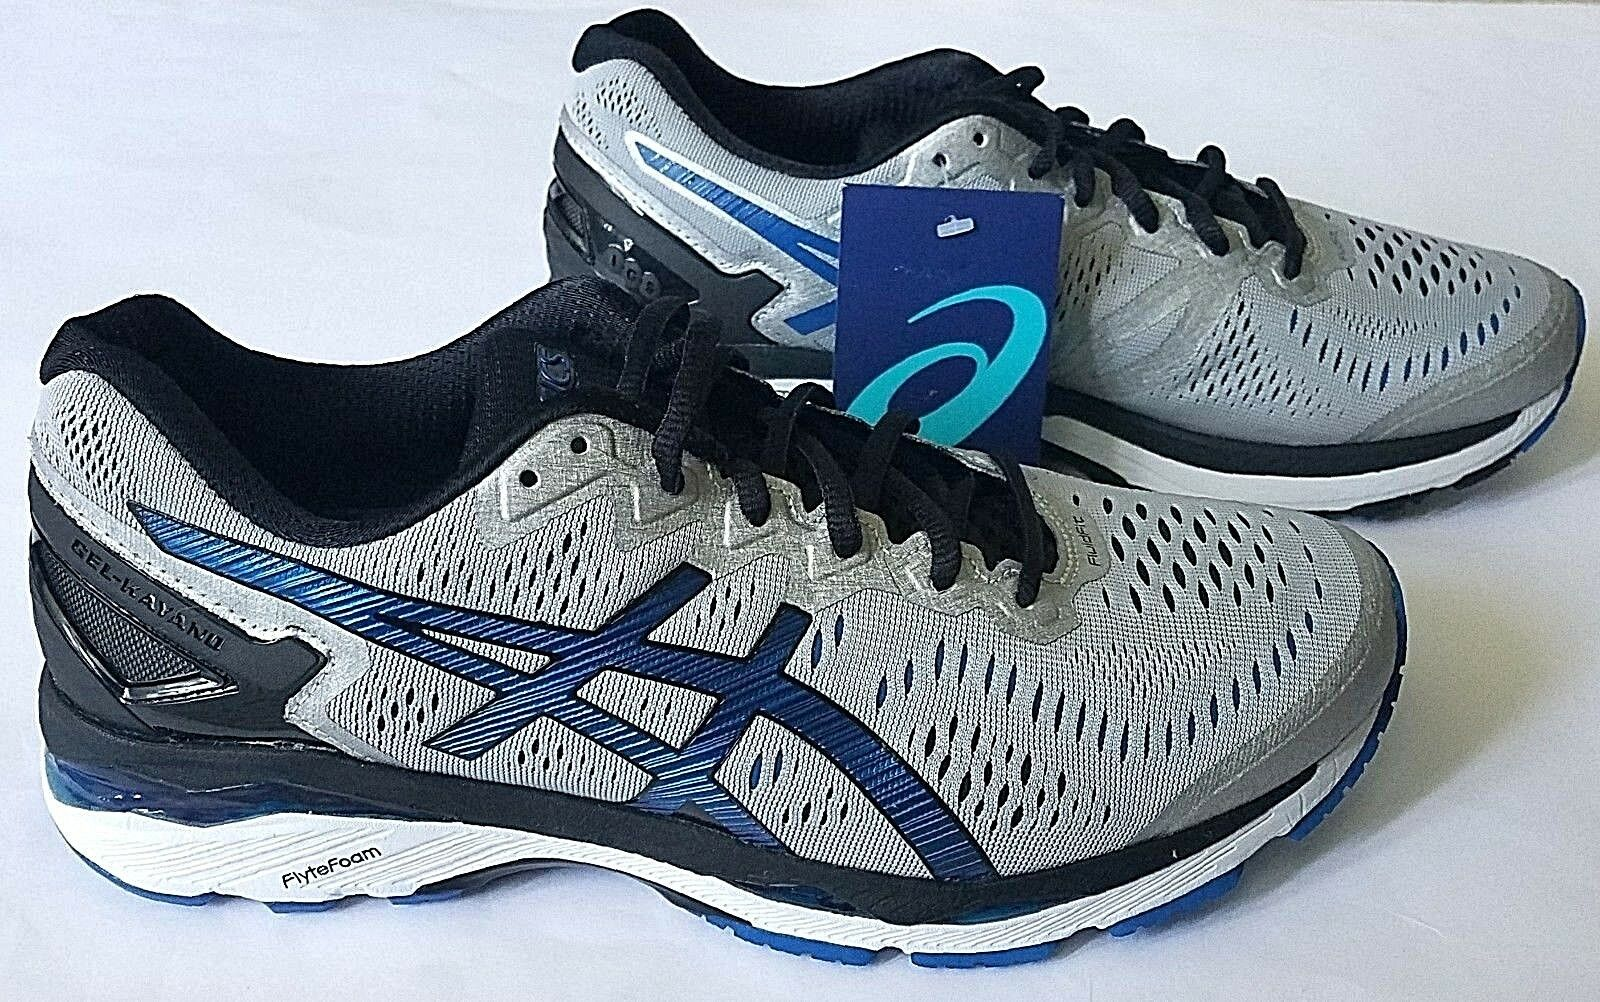 Asics Gel-Kayano 23 Mens Size 9 (4E) Extra Wide Running Shoes T648N-9345